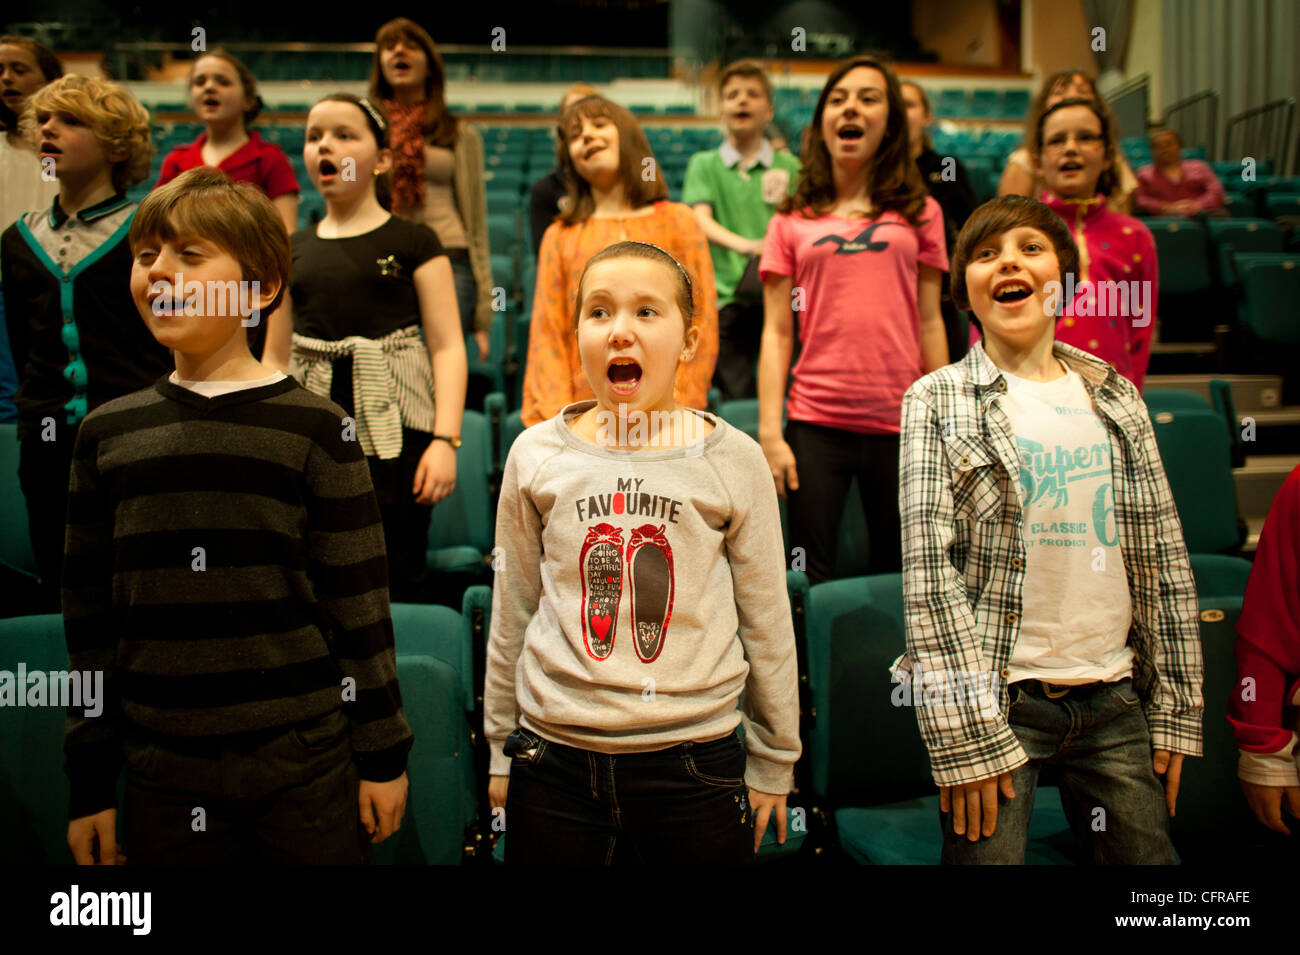 The 'Only Kids Aloud' welsh children's choir rehearsing Mahler's 8th Symphony at Aberystwyth Arts - Stock Image